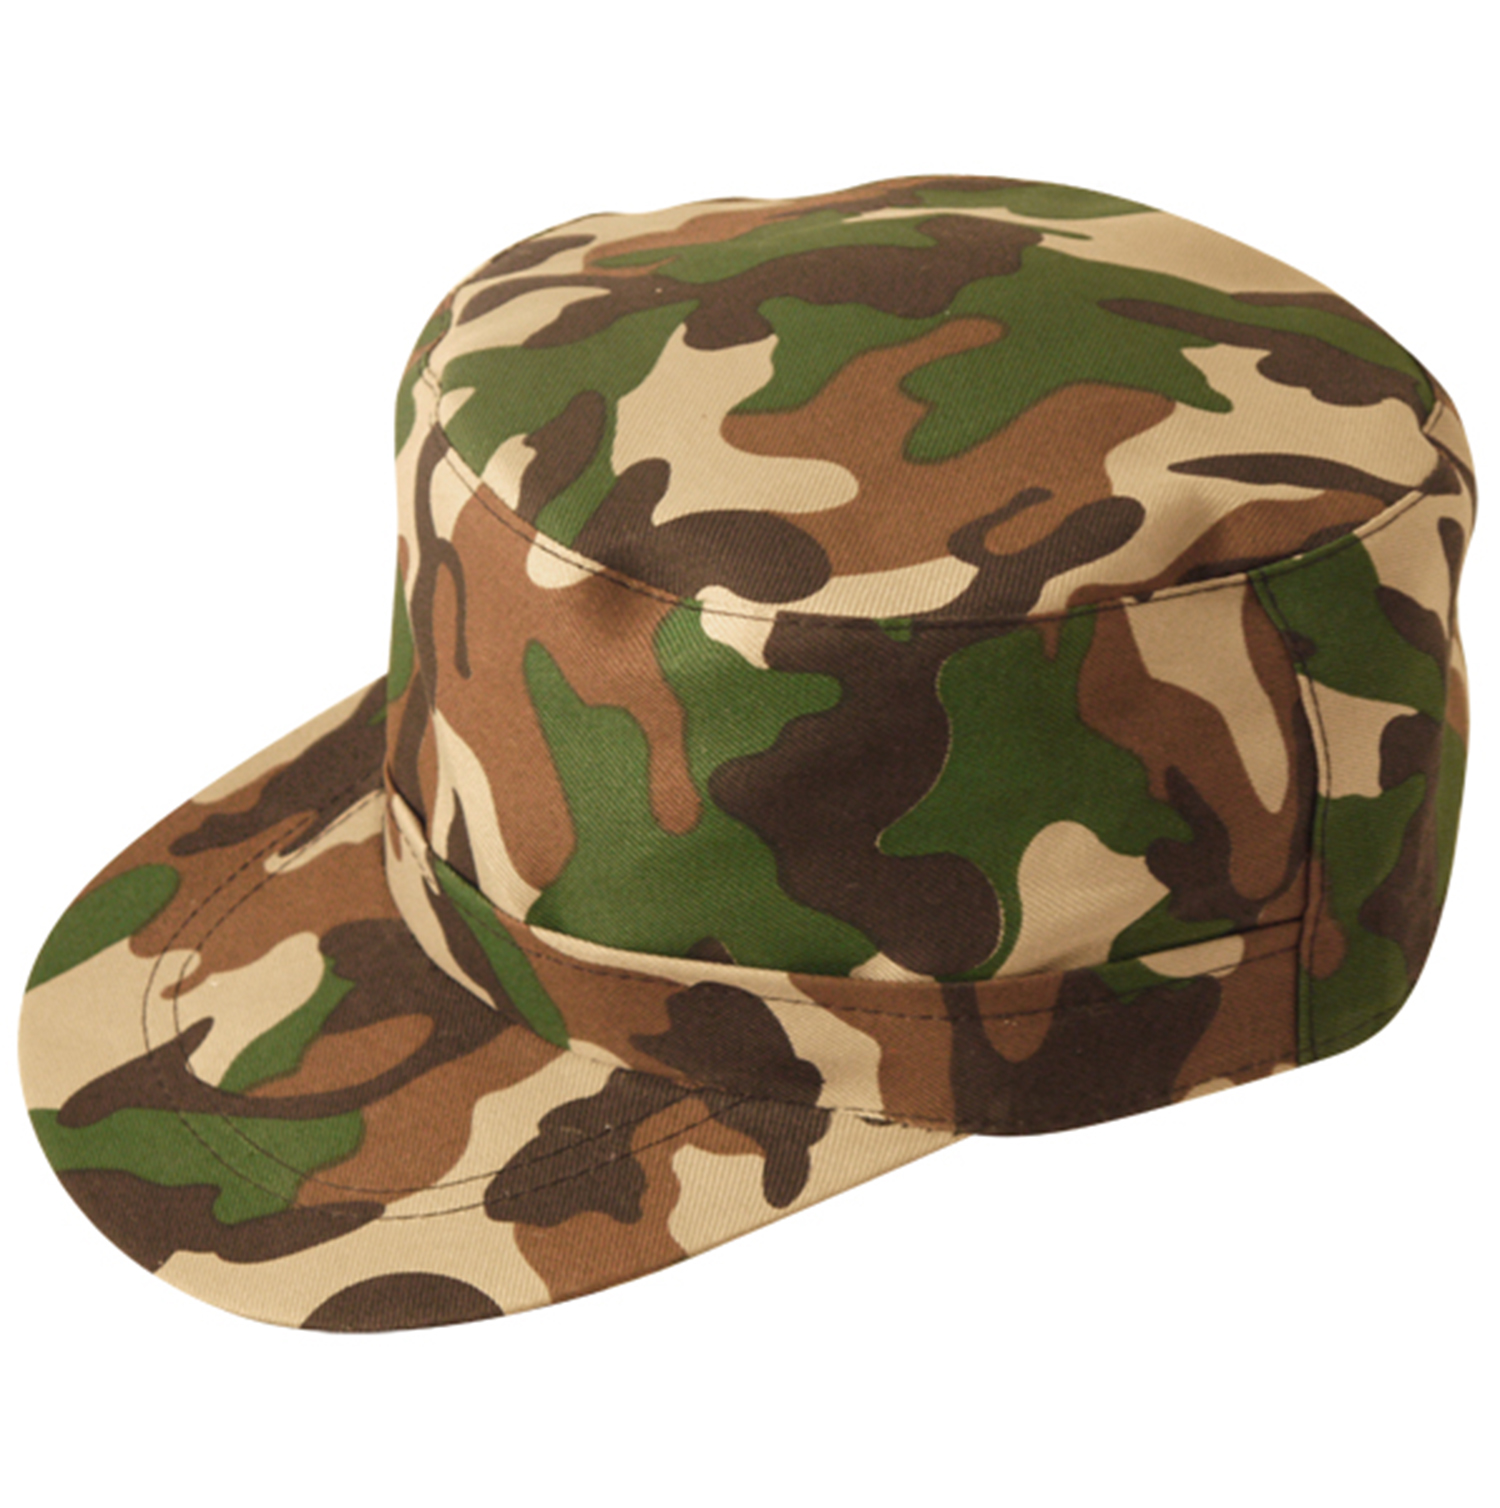 ADULTS ARMY SOLDIER CAMOUFLAGE HAT MILITARY CAP UNISEX FANCY DRESS